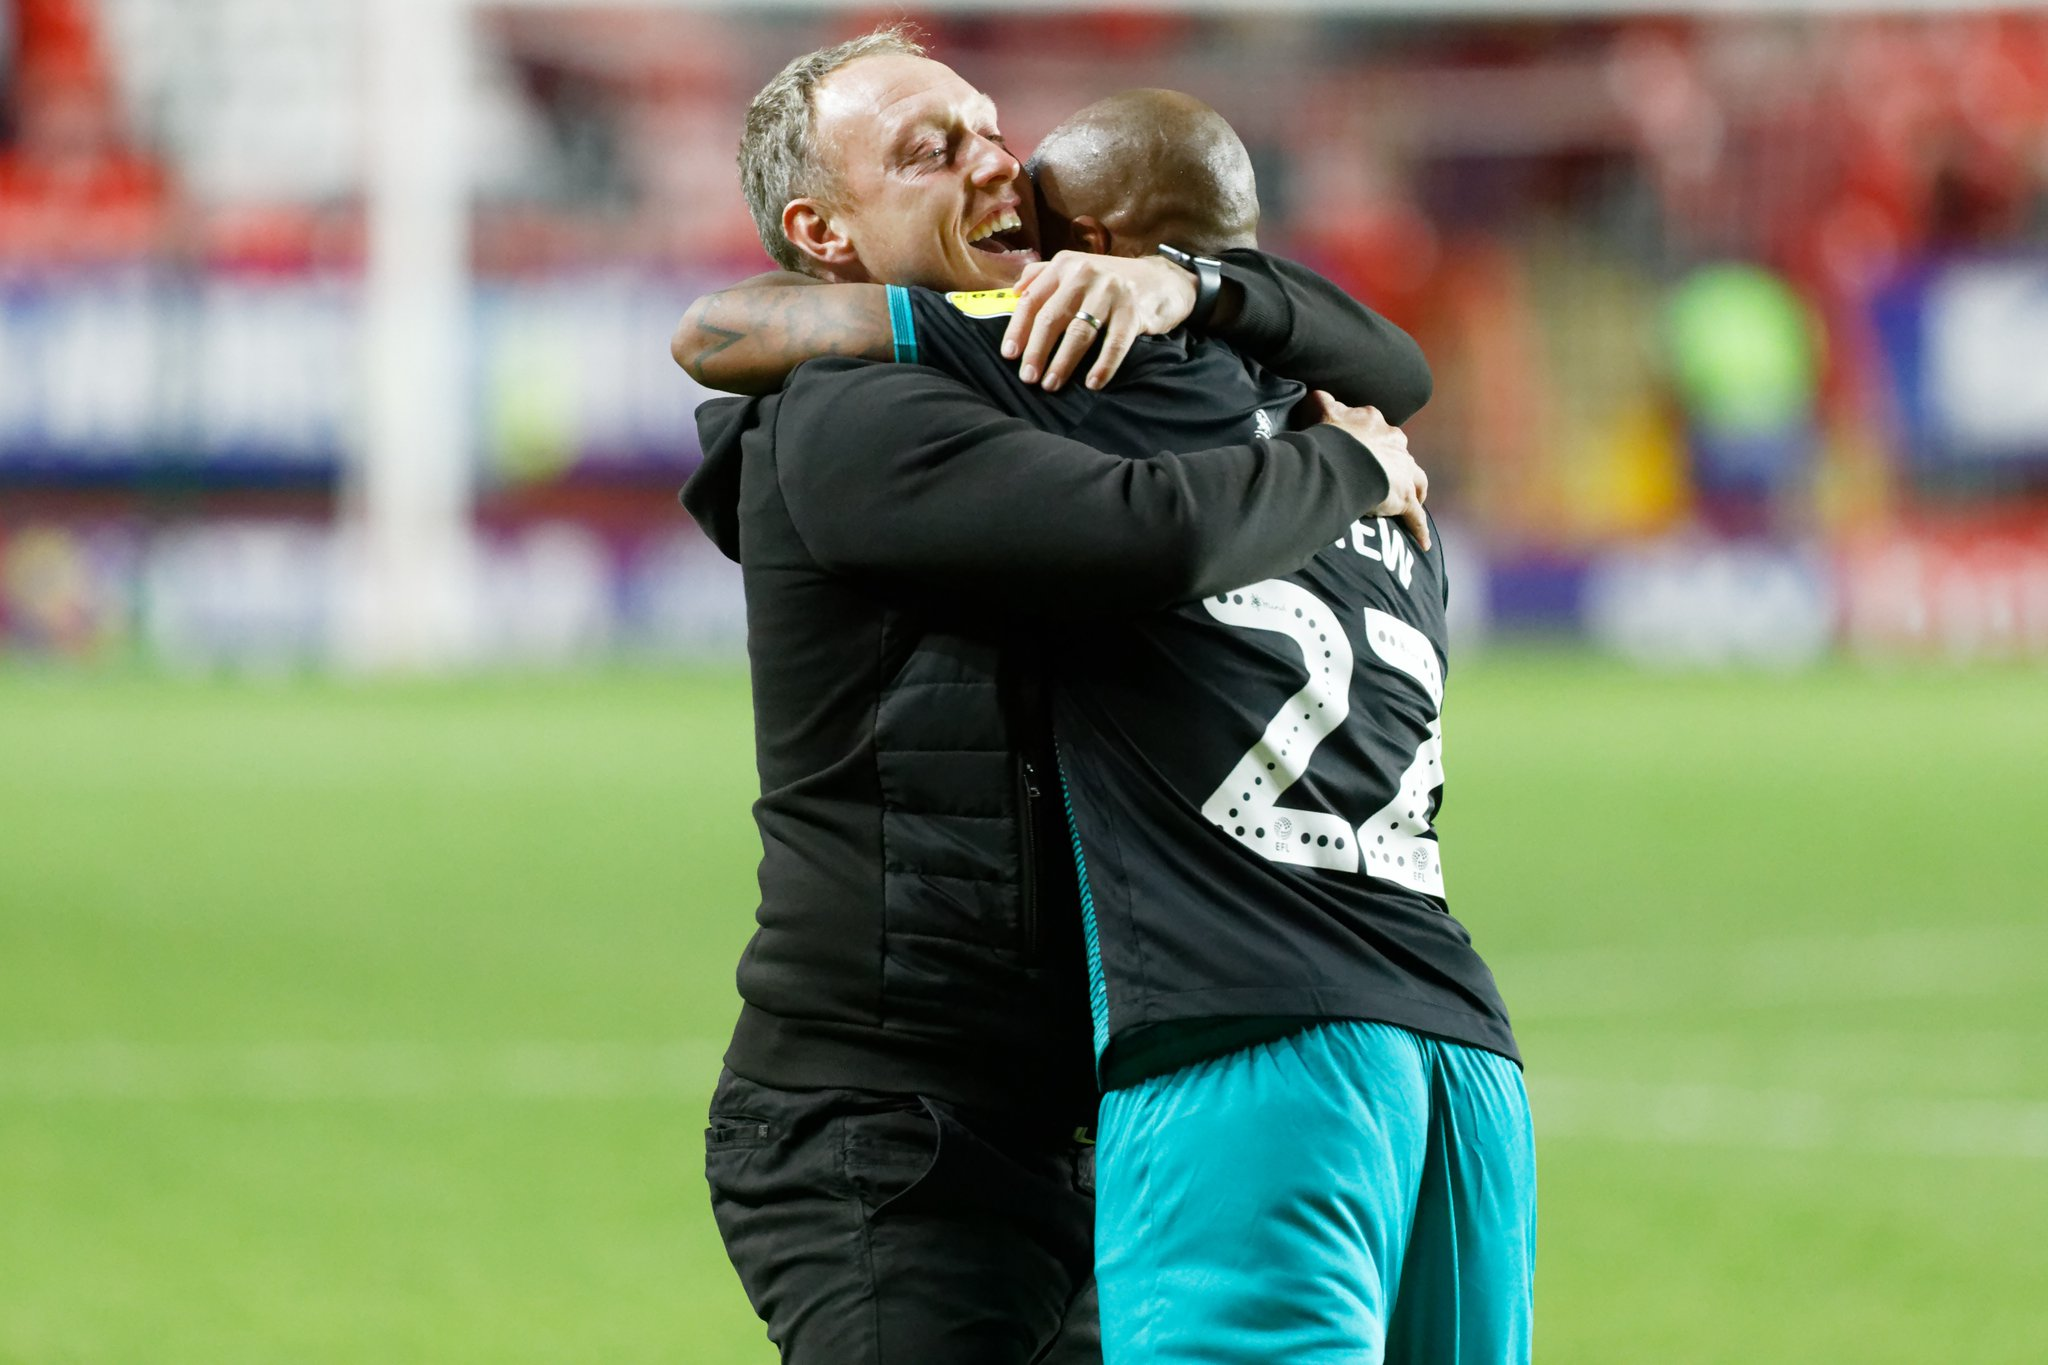 Swansea boss Steve Cooper lauds Andre Ayew after huge win over Millwall